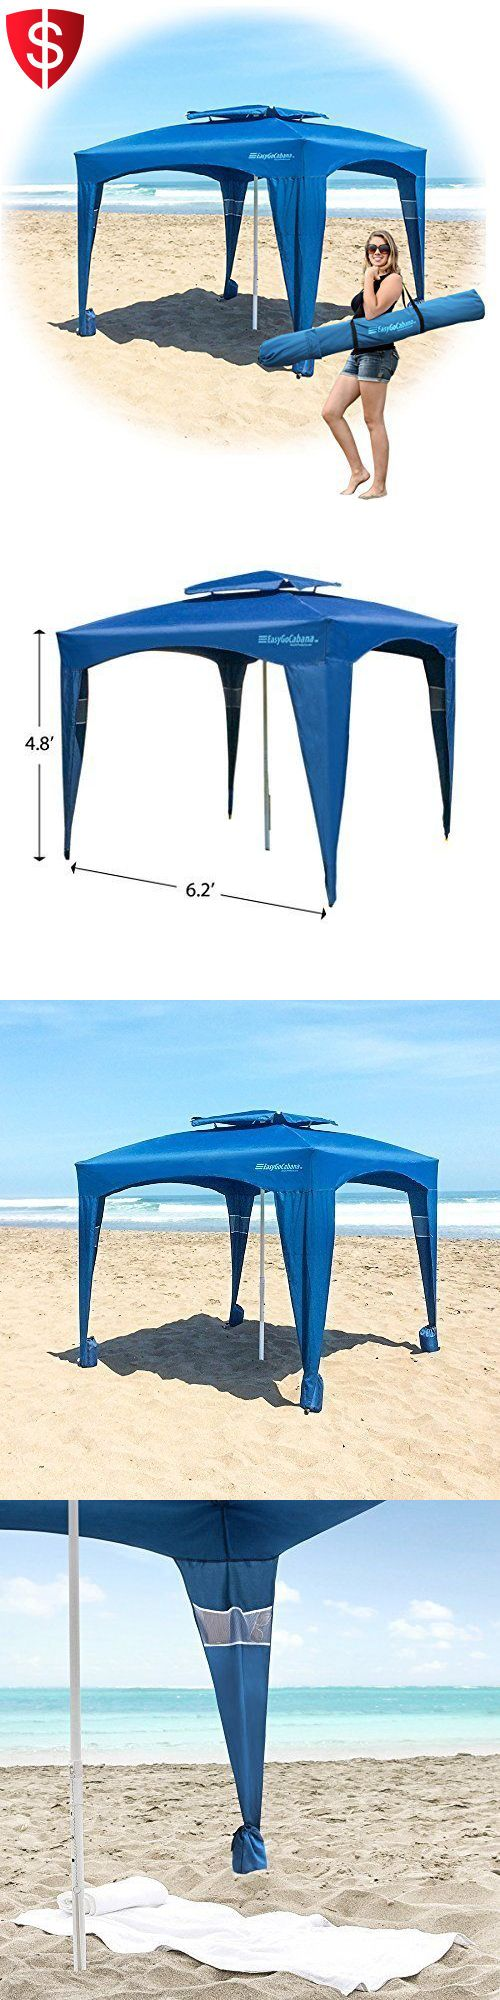 Canopies and Shelters 179011: Beach Canopy Tent Outdoor Umbrella Large Shelter Camping Sun Uv Cabana Portable -> BUY IT NOW ONLY: $82.49 on eBay!